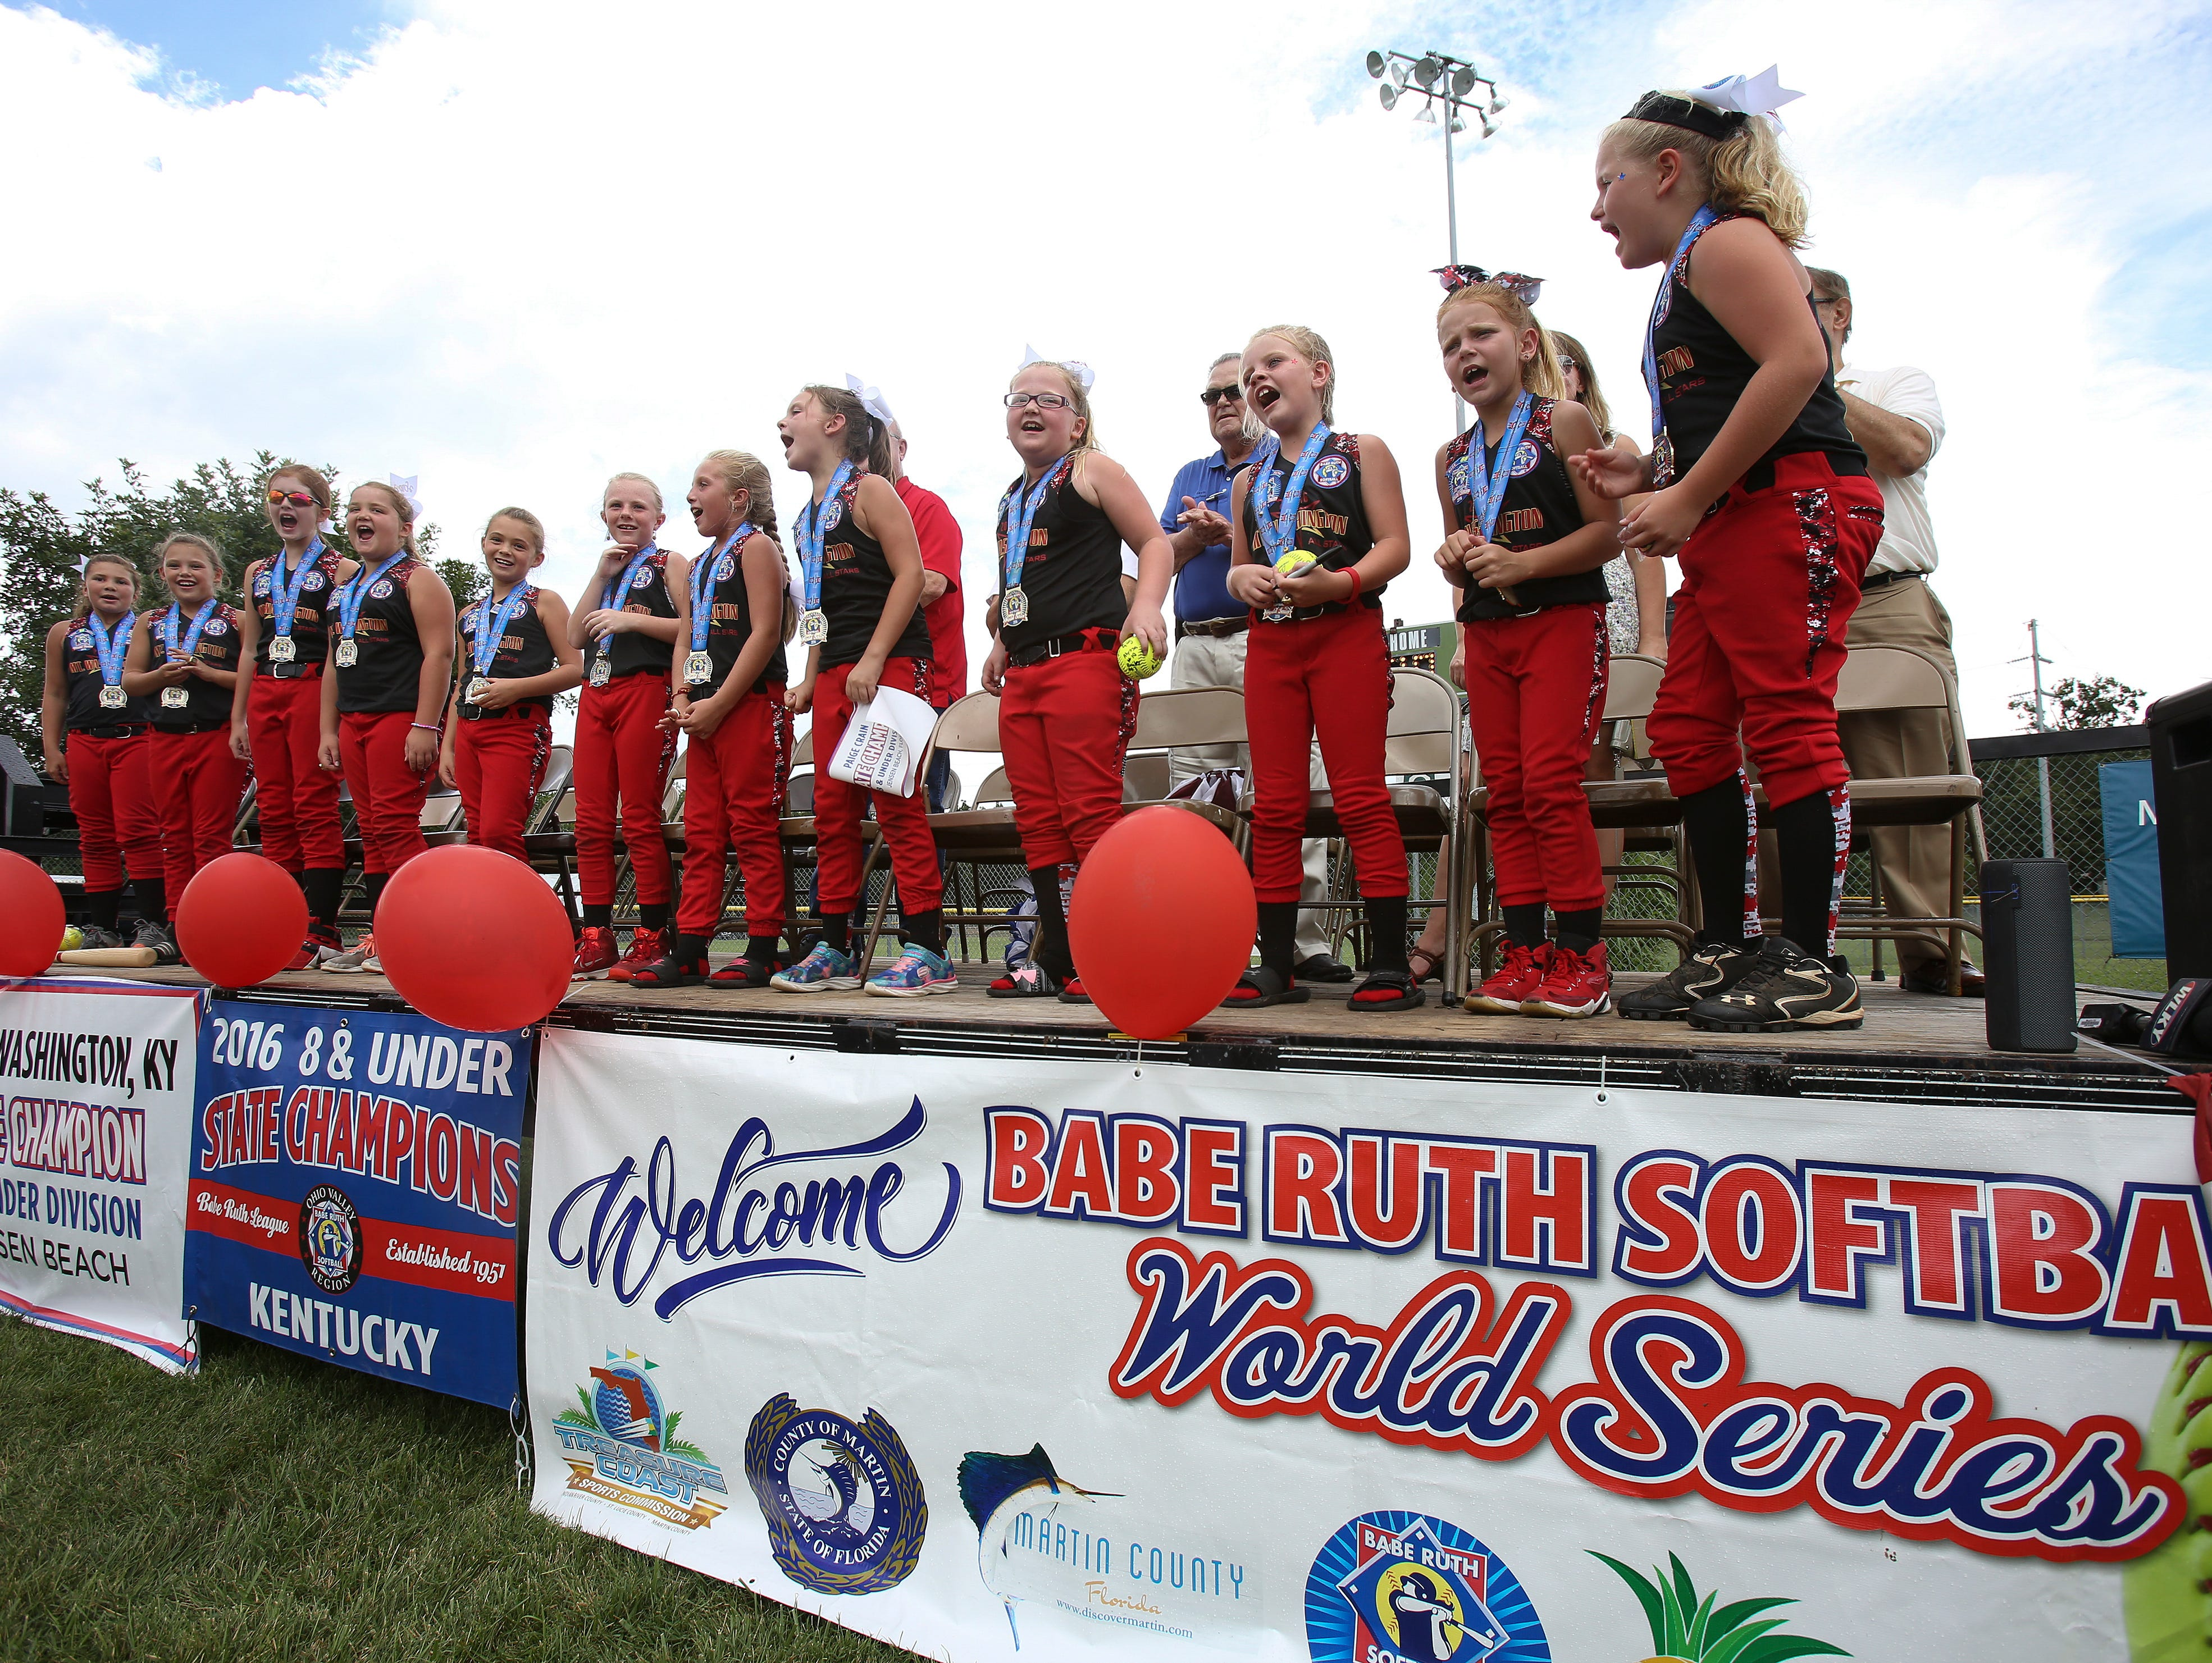 The Mount Washington All Stars 8 and under softball team sang a team chant during a pep rally to celebrate their state championship in the Babe Ruth Softball World Series. Aug. 14, 2016